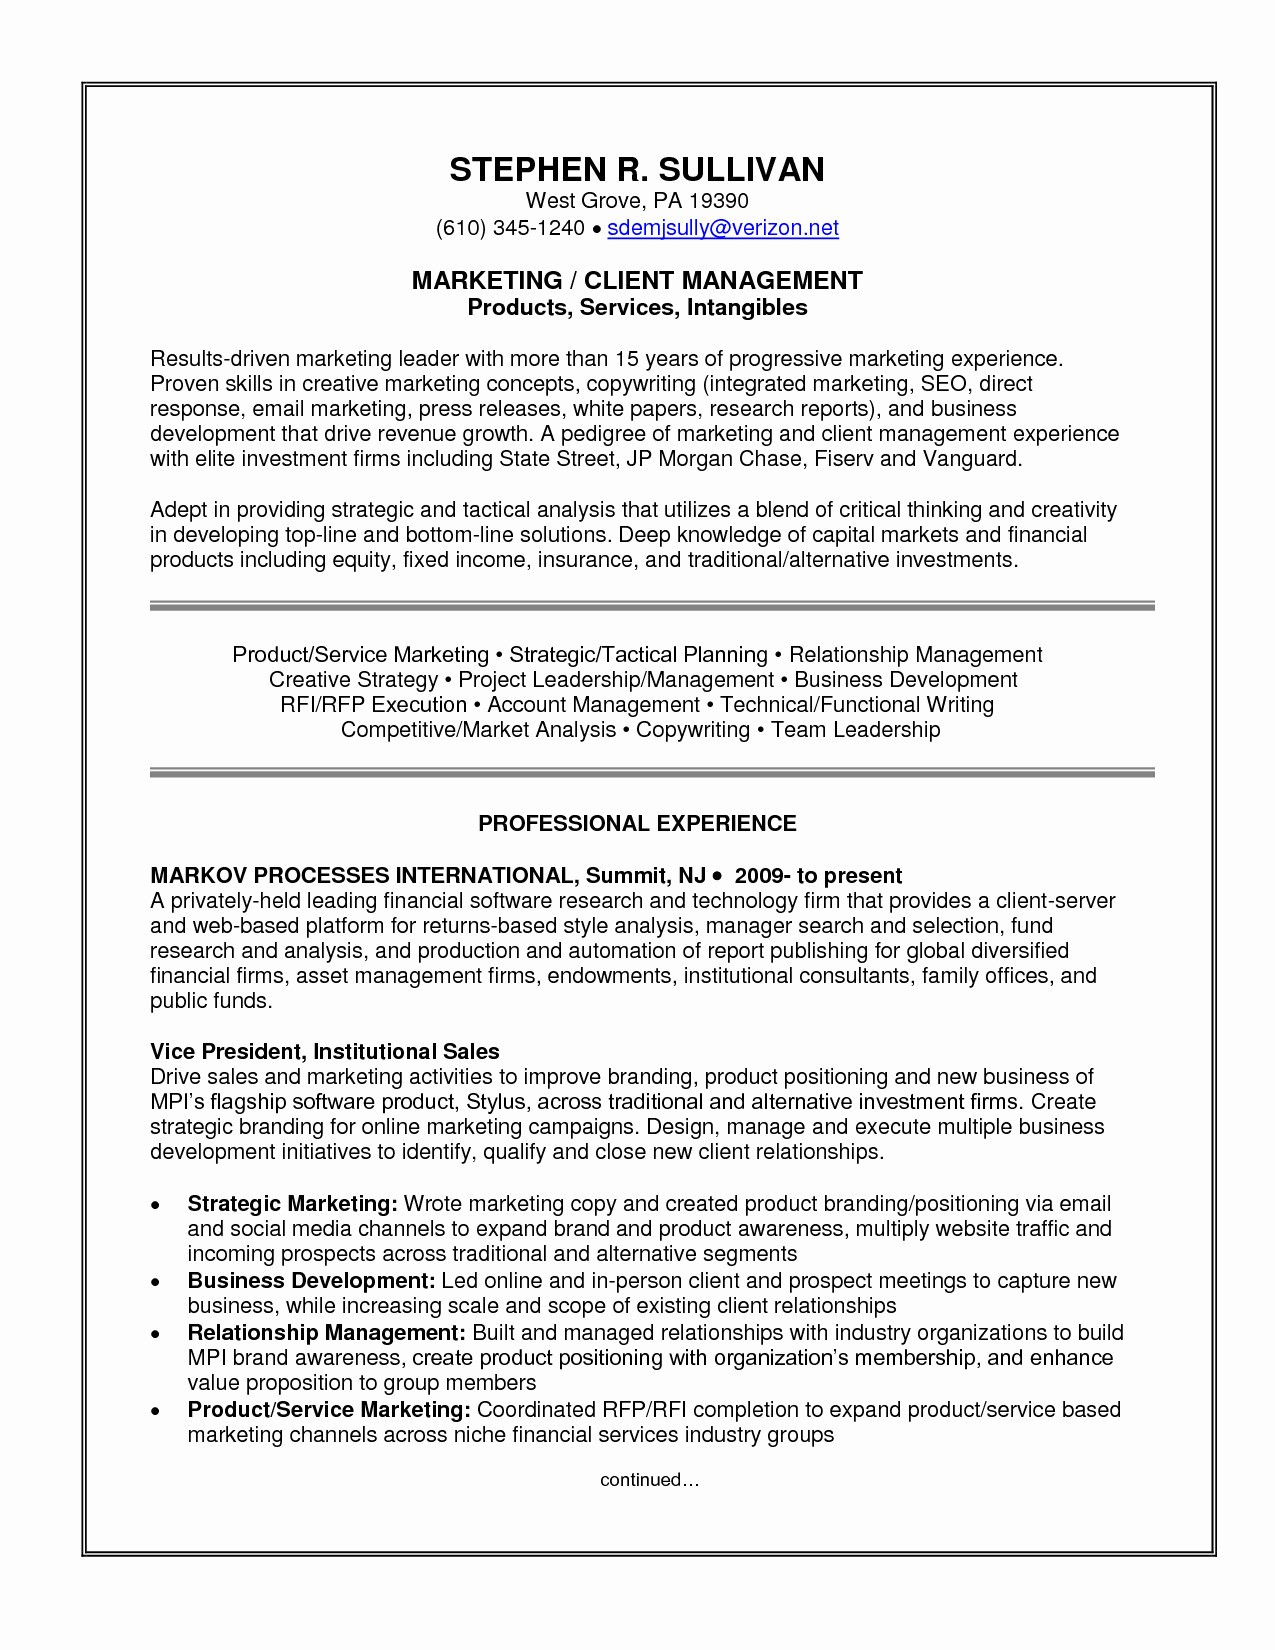 Resume Writer Houston - Executive Resume Service Luxury Cfo Resume Examples Resume Writing